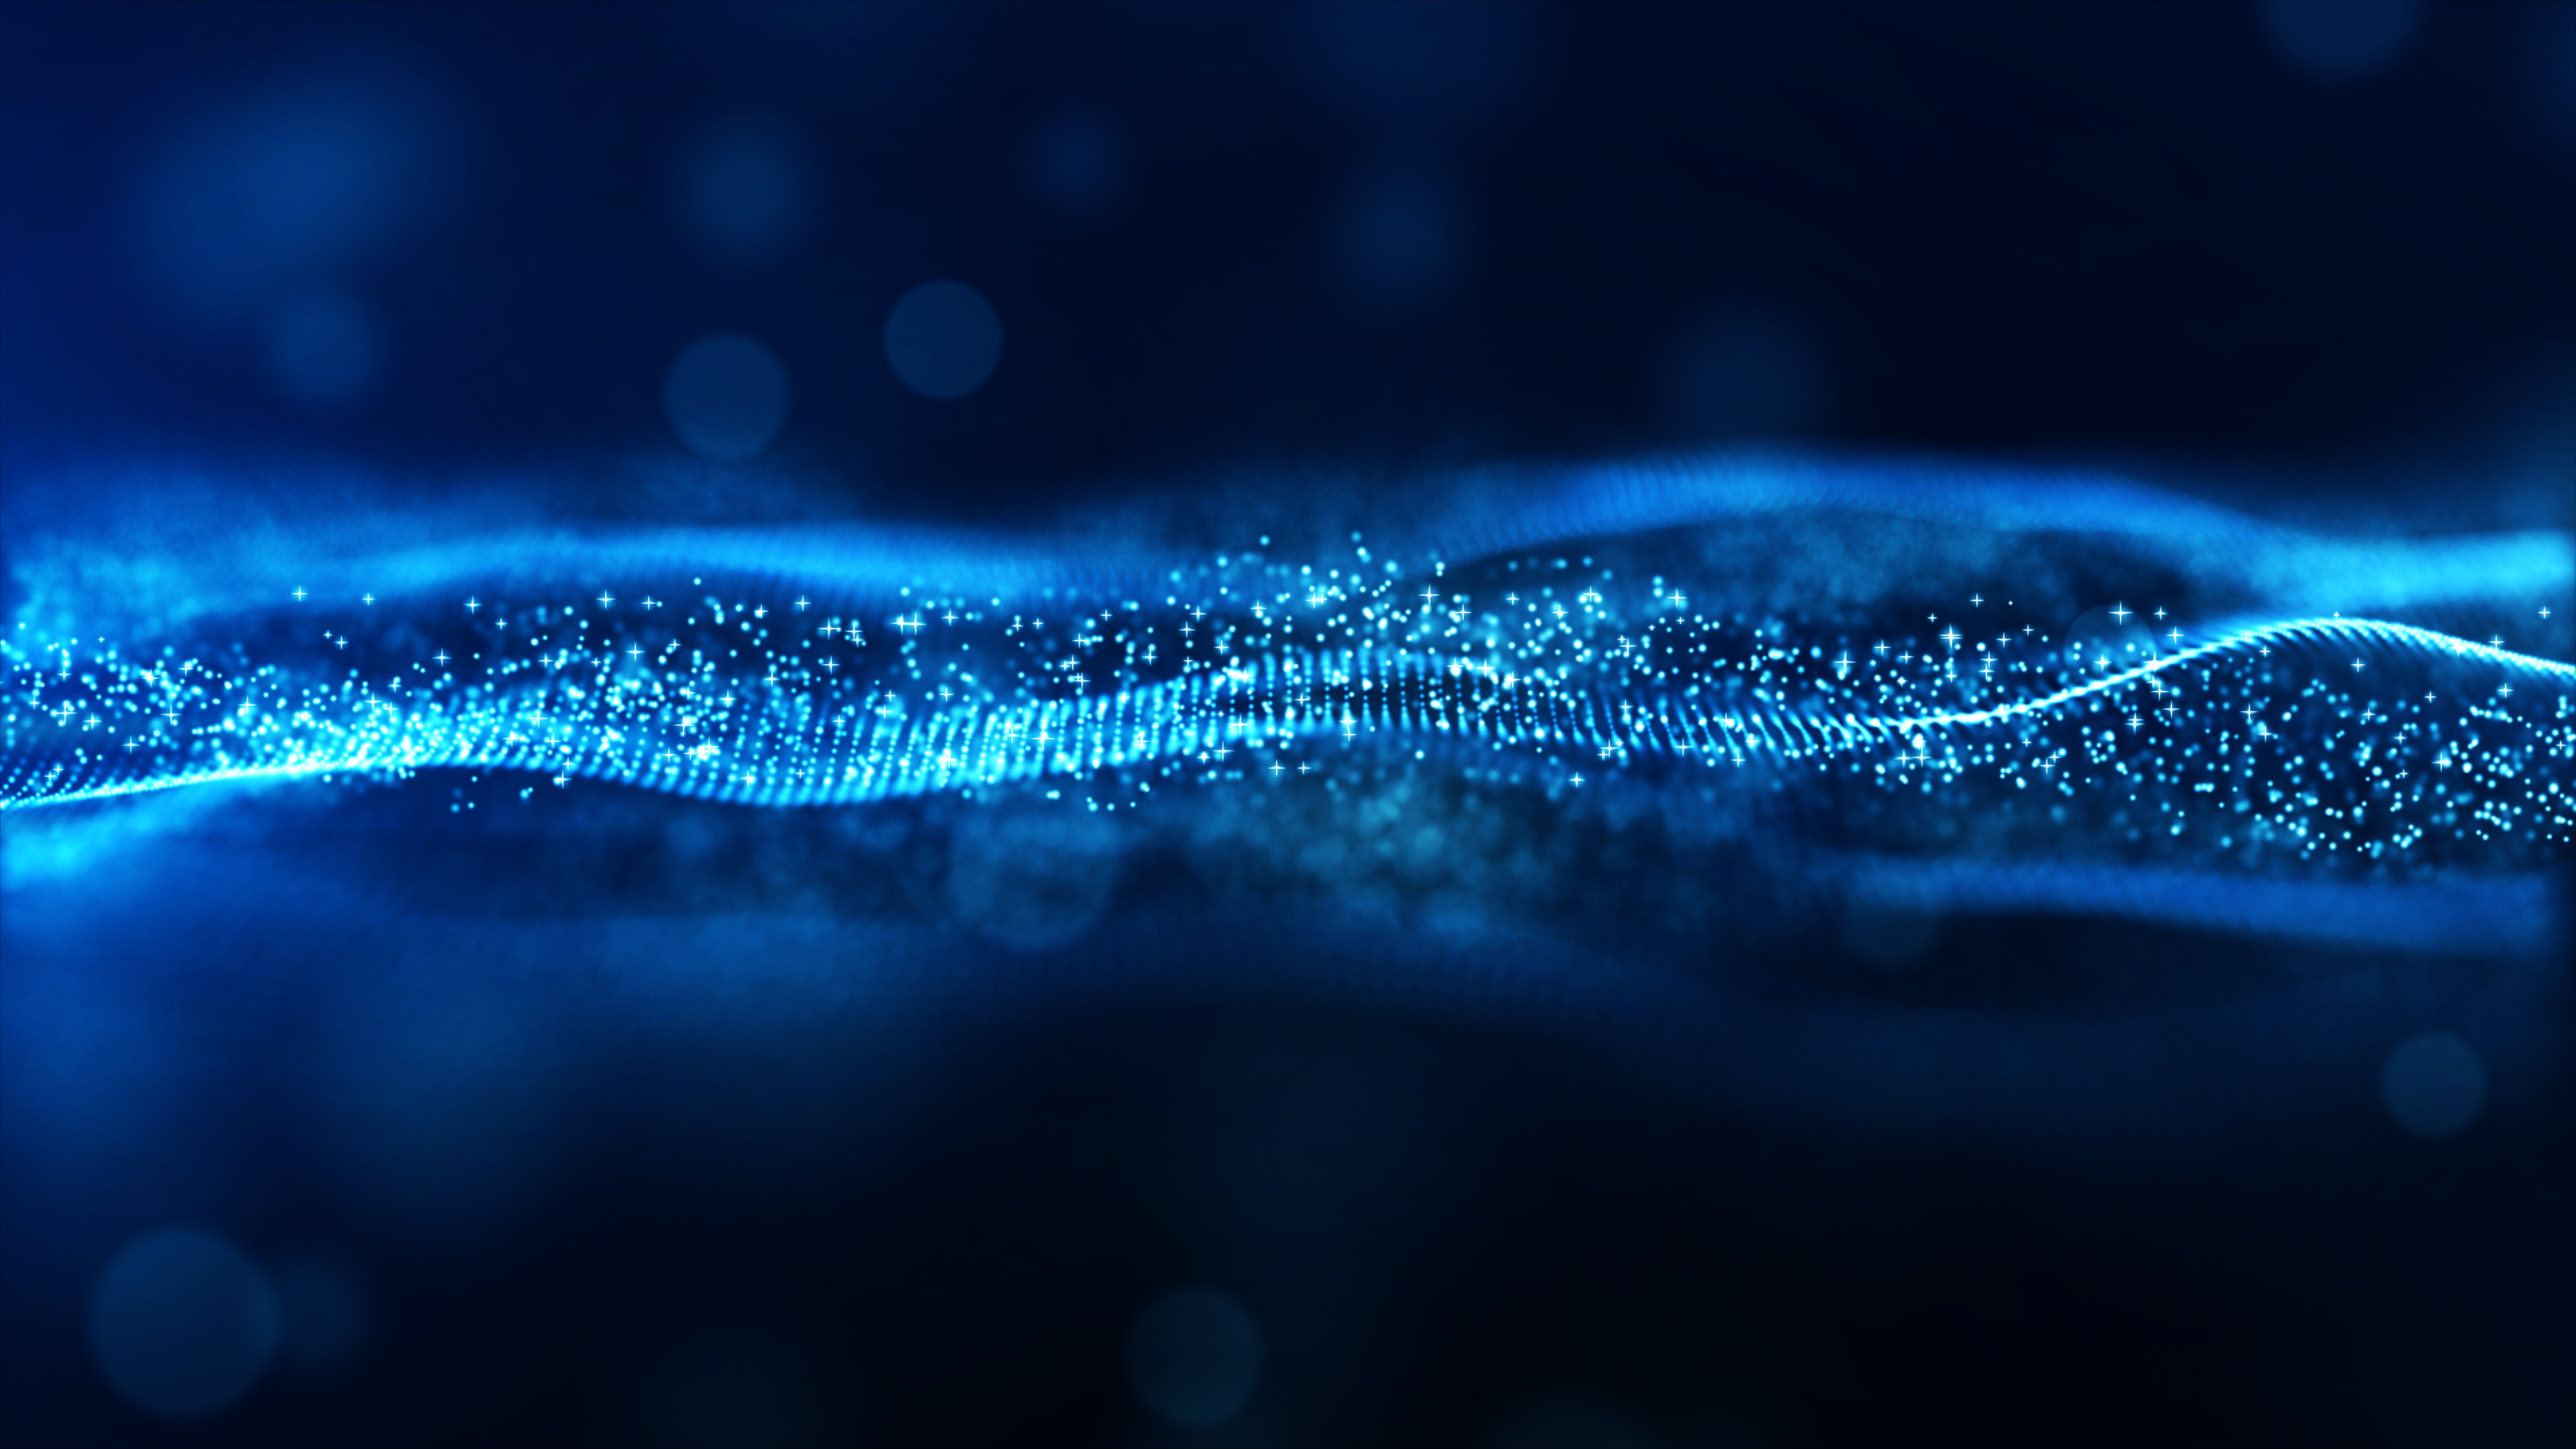 Digital abstract blue color wave particles flow background